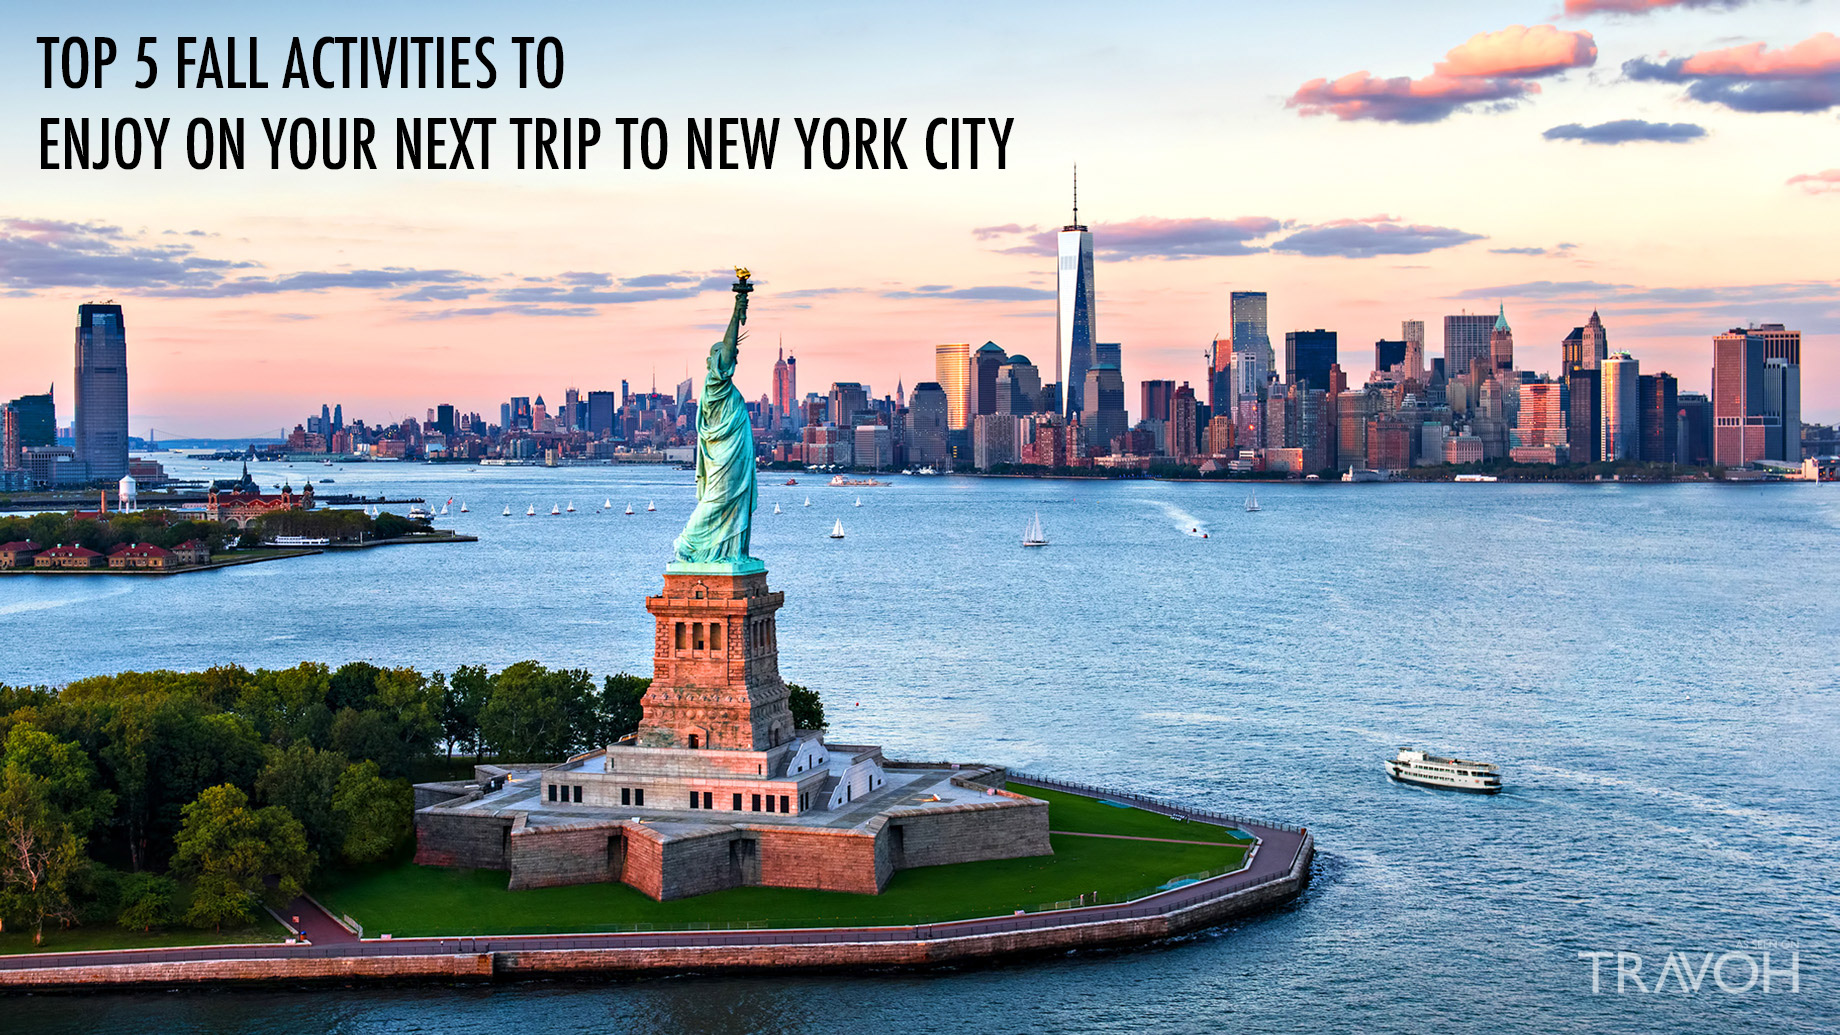 Top 5 Fall Activities to Enjoy on Your Next Trip to New York City